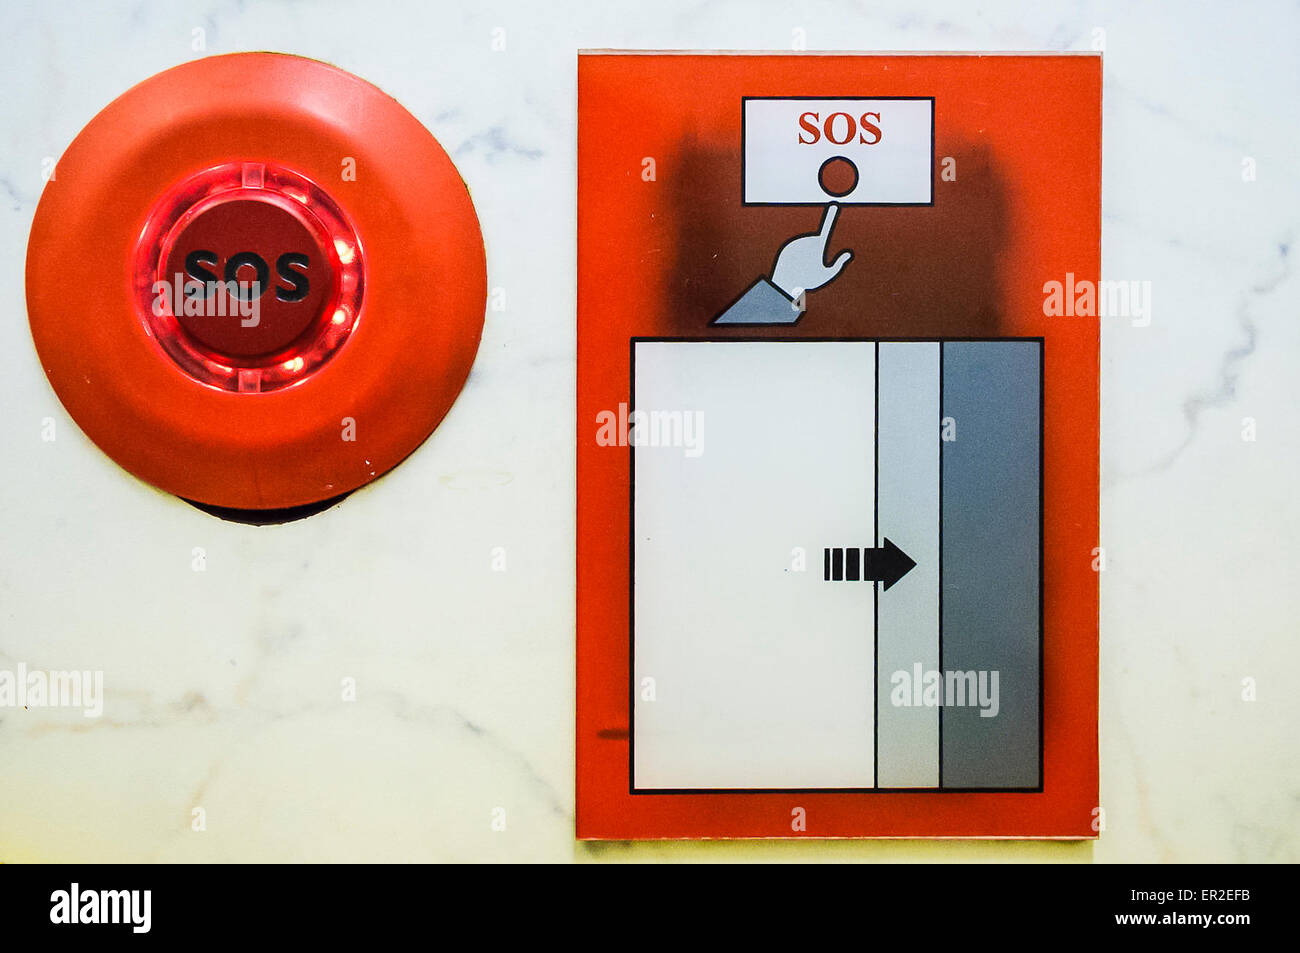 Red SOS emergency call button - Stock Image